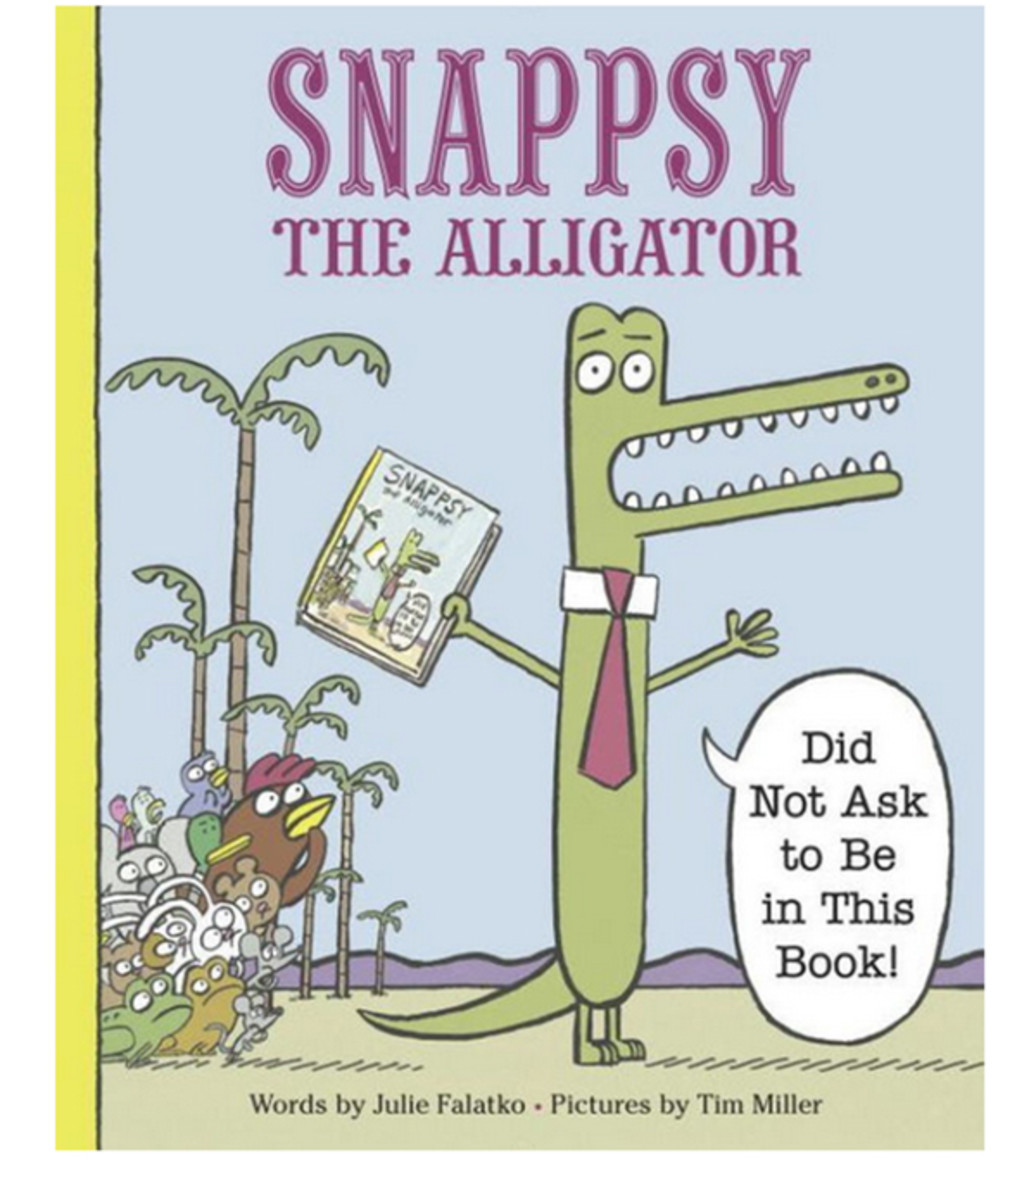 snappsy the alligator